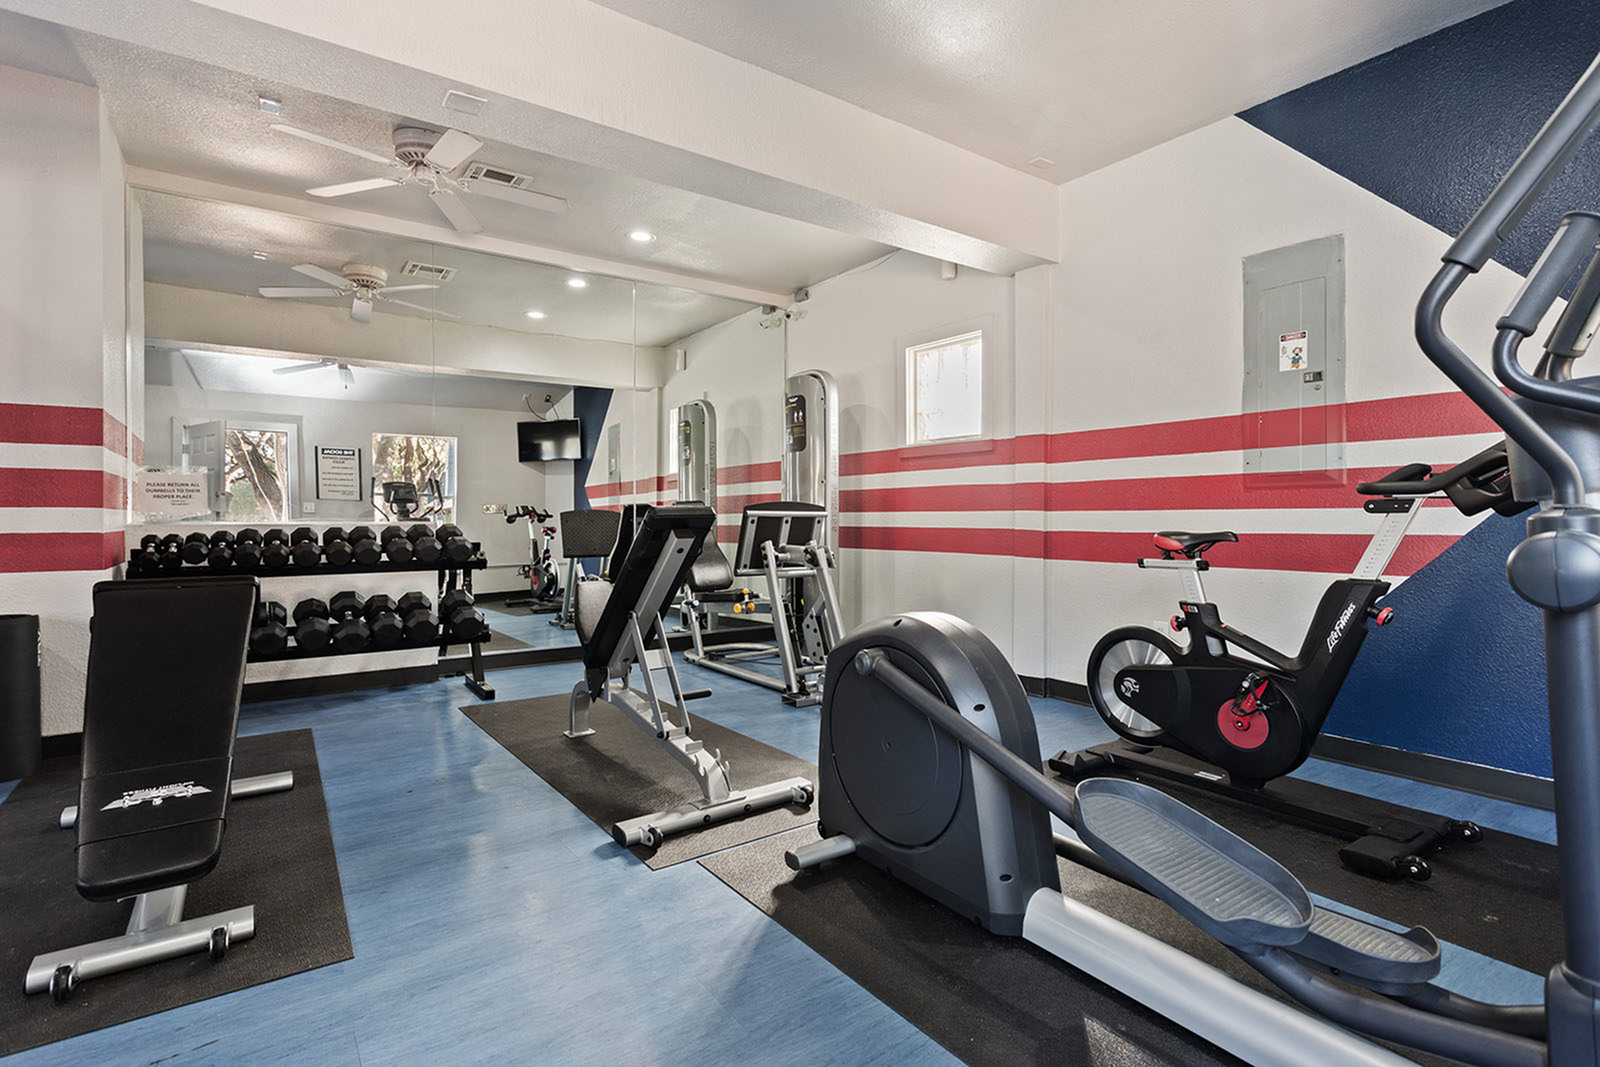 Image of Fitness Center for The Social SMTX